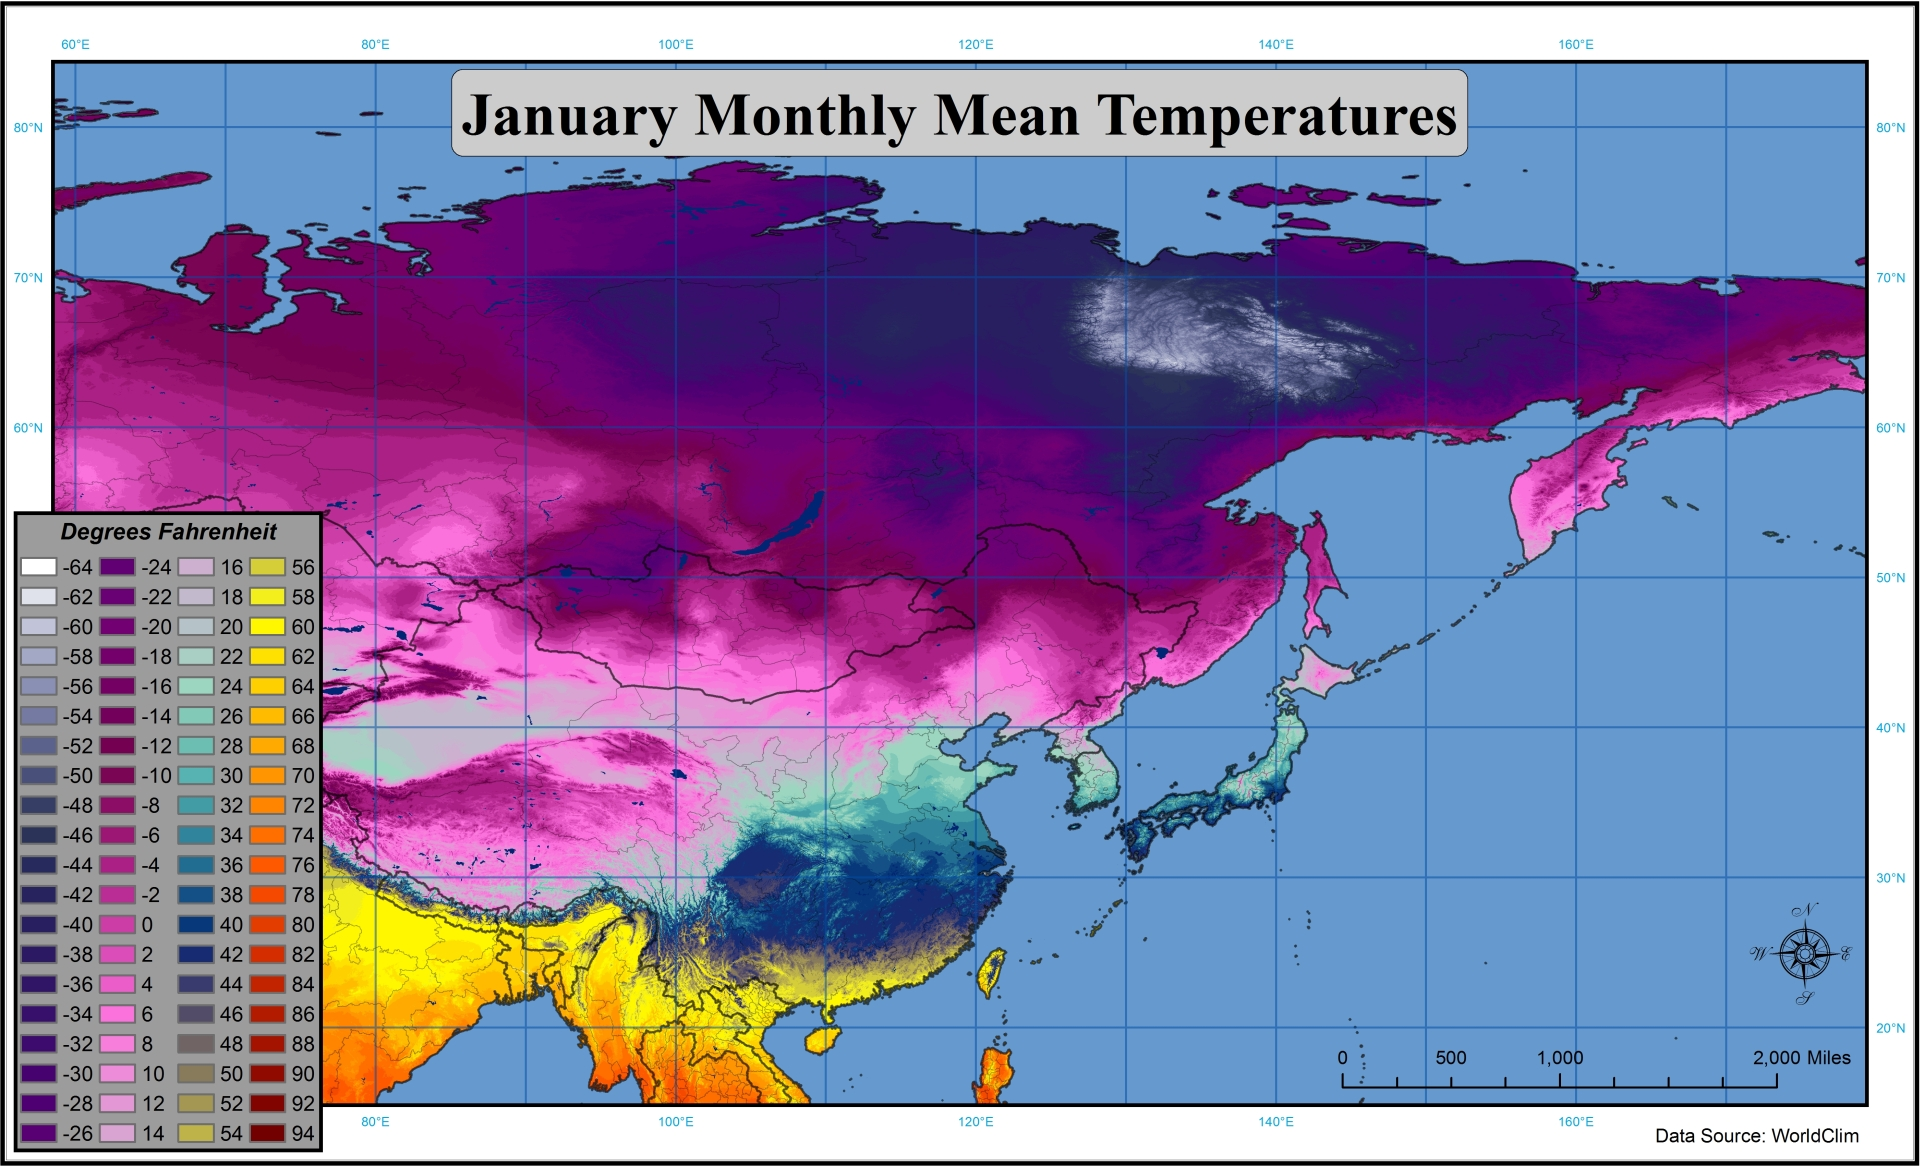 Where Is Siberia On A World Map.Just How Much Colder Is Siberia Climate Warm Average